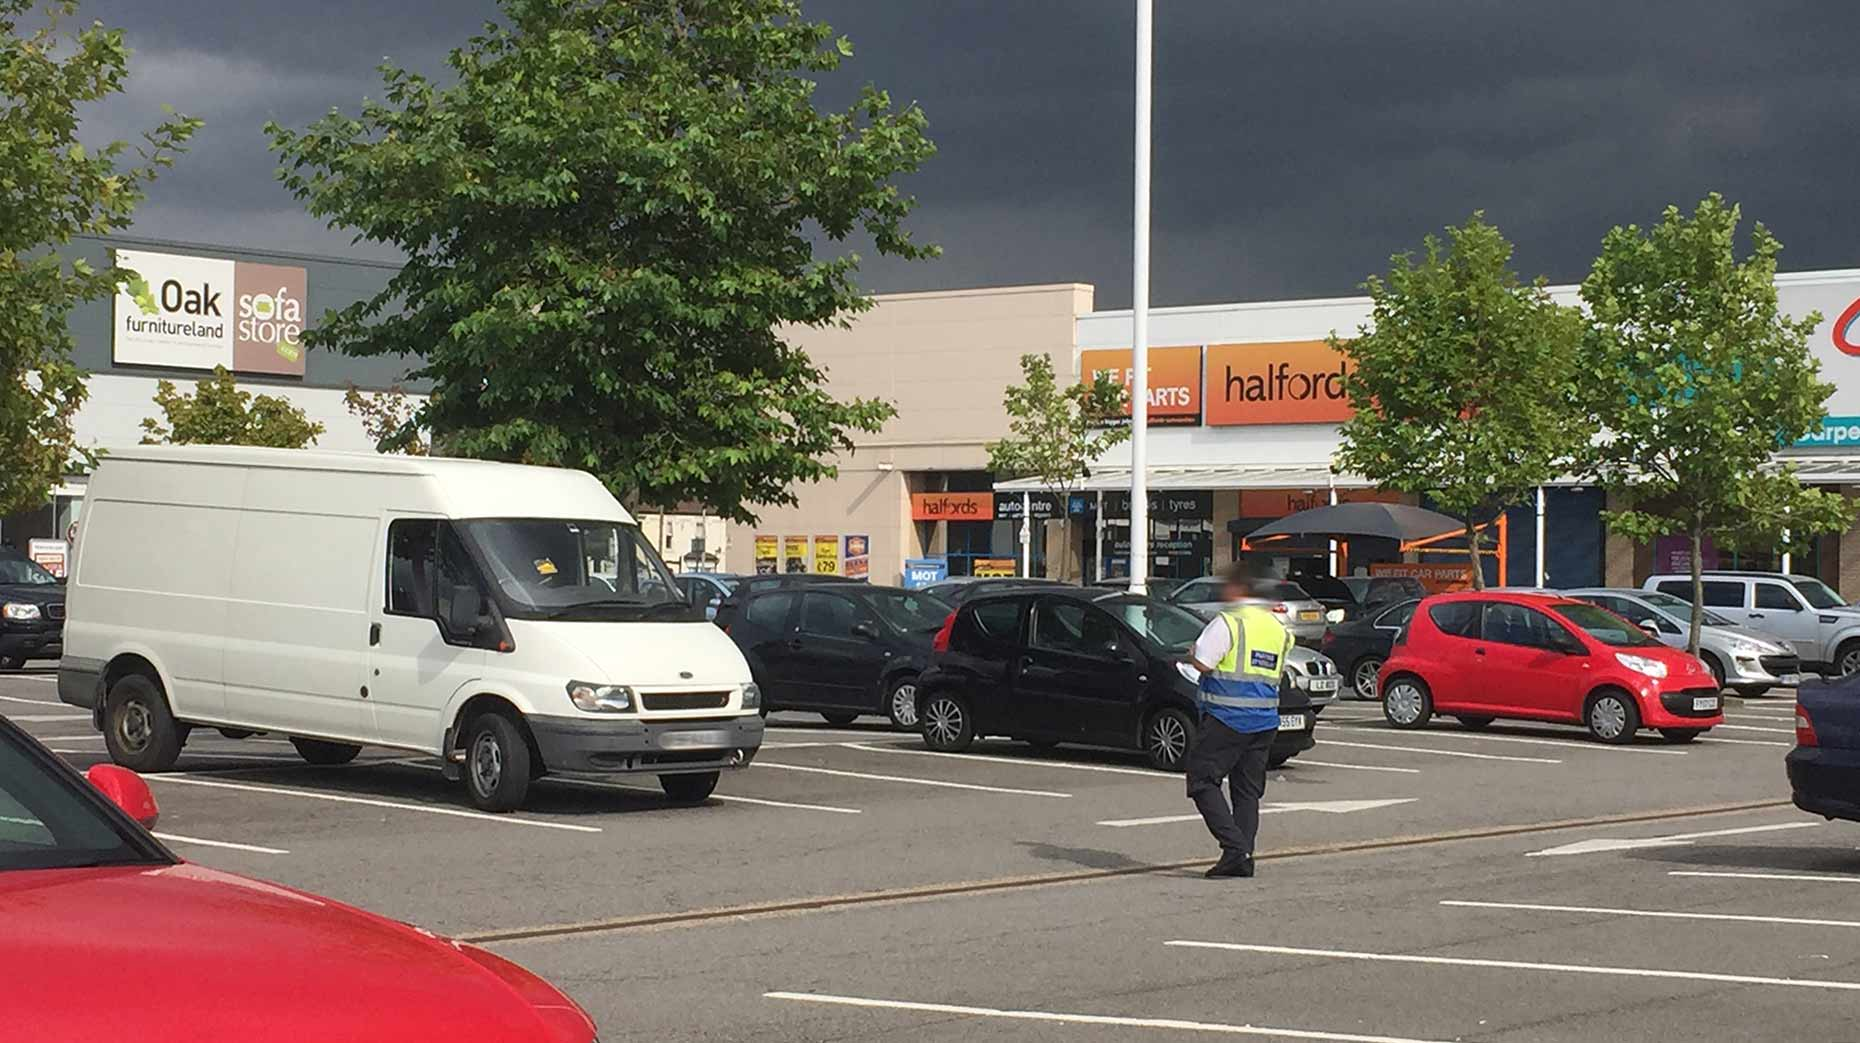 The car park operated by UKPC in the Tritton Retail Park. Photo: The Lincolnite